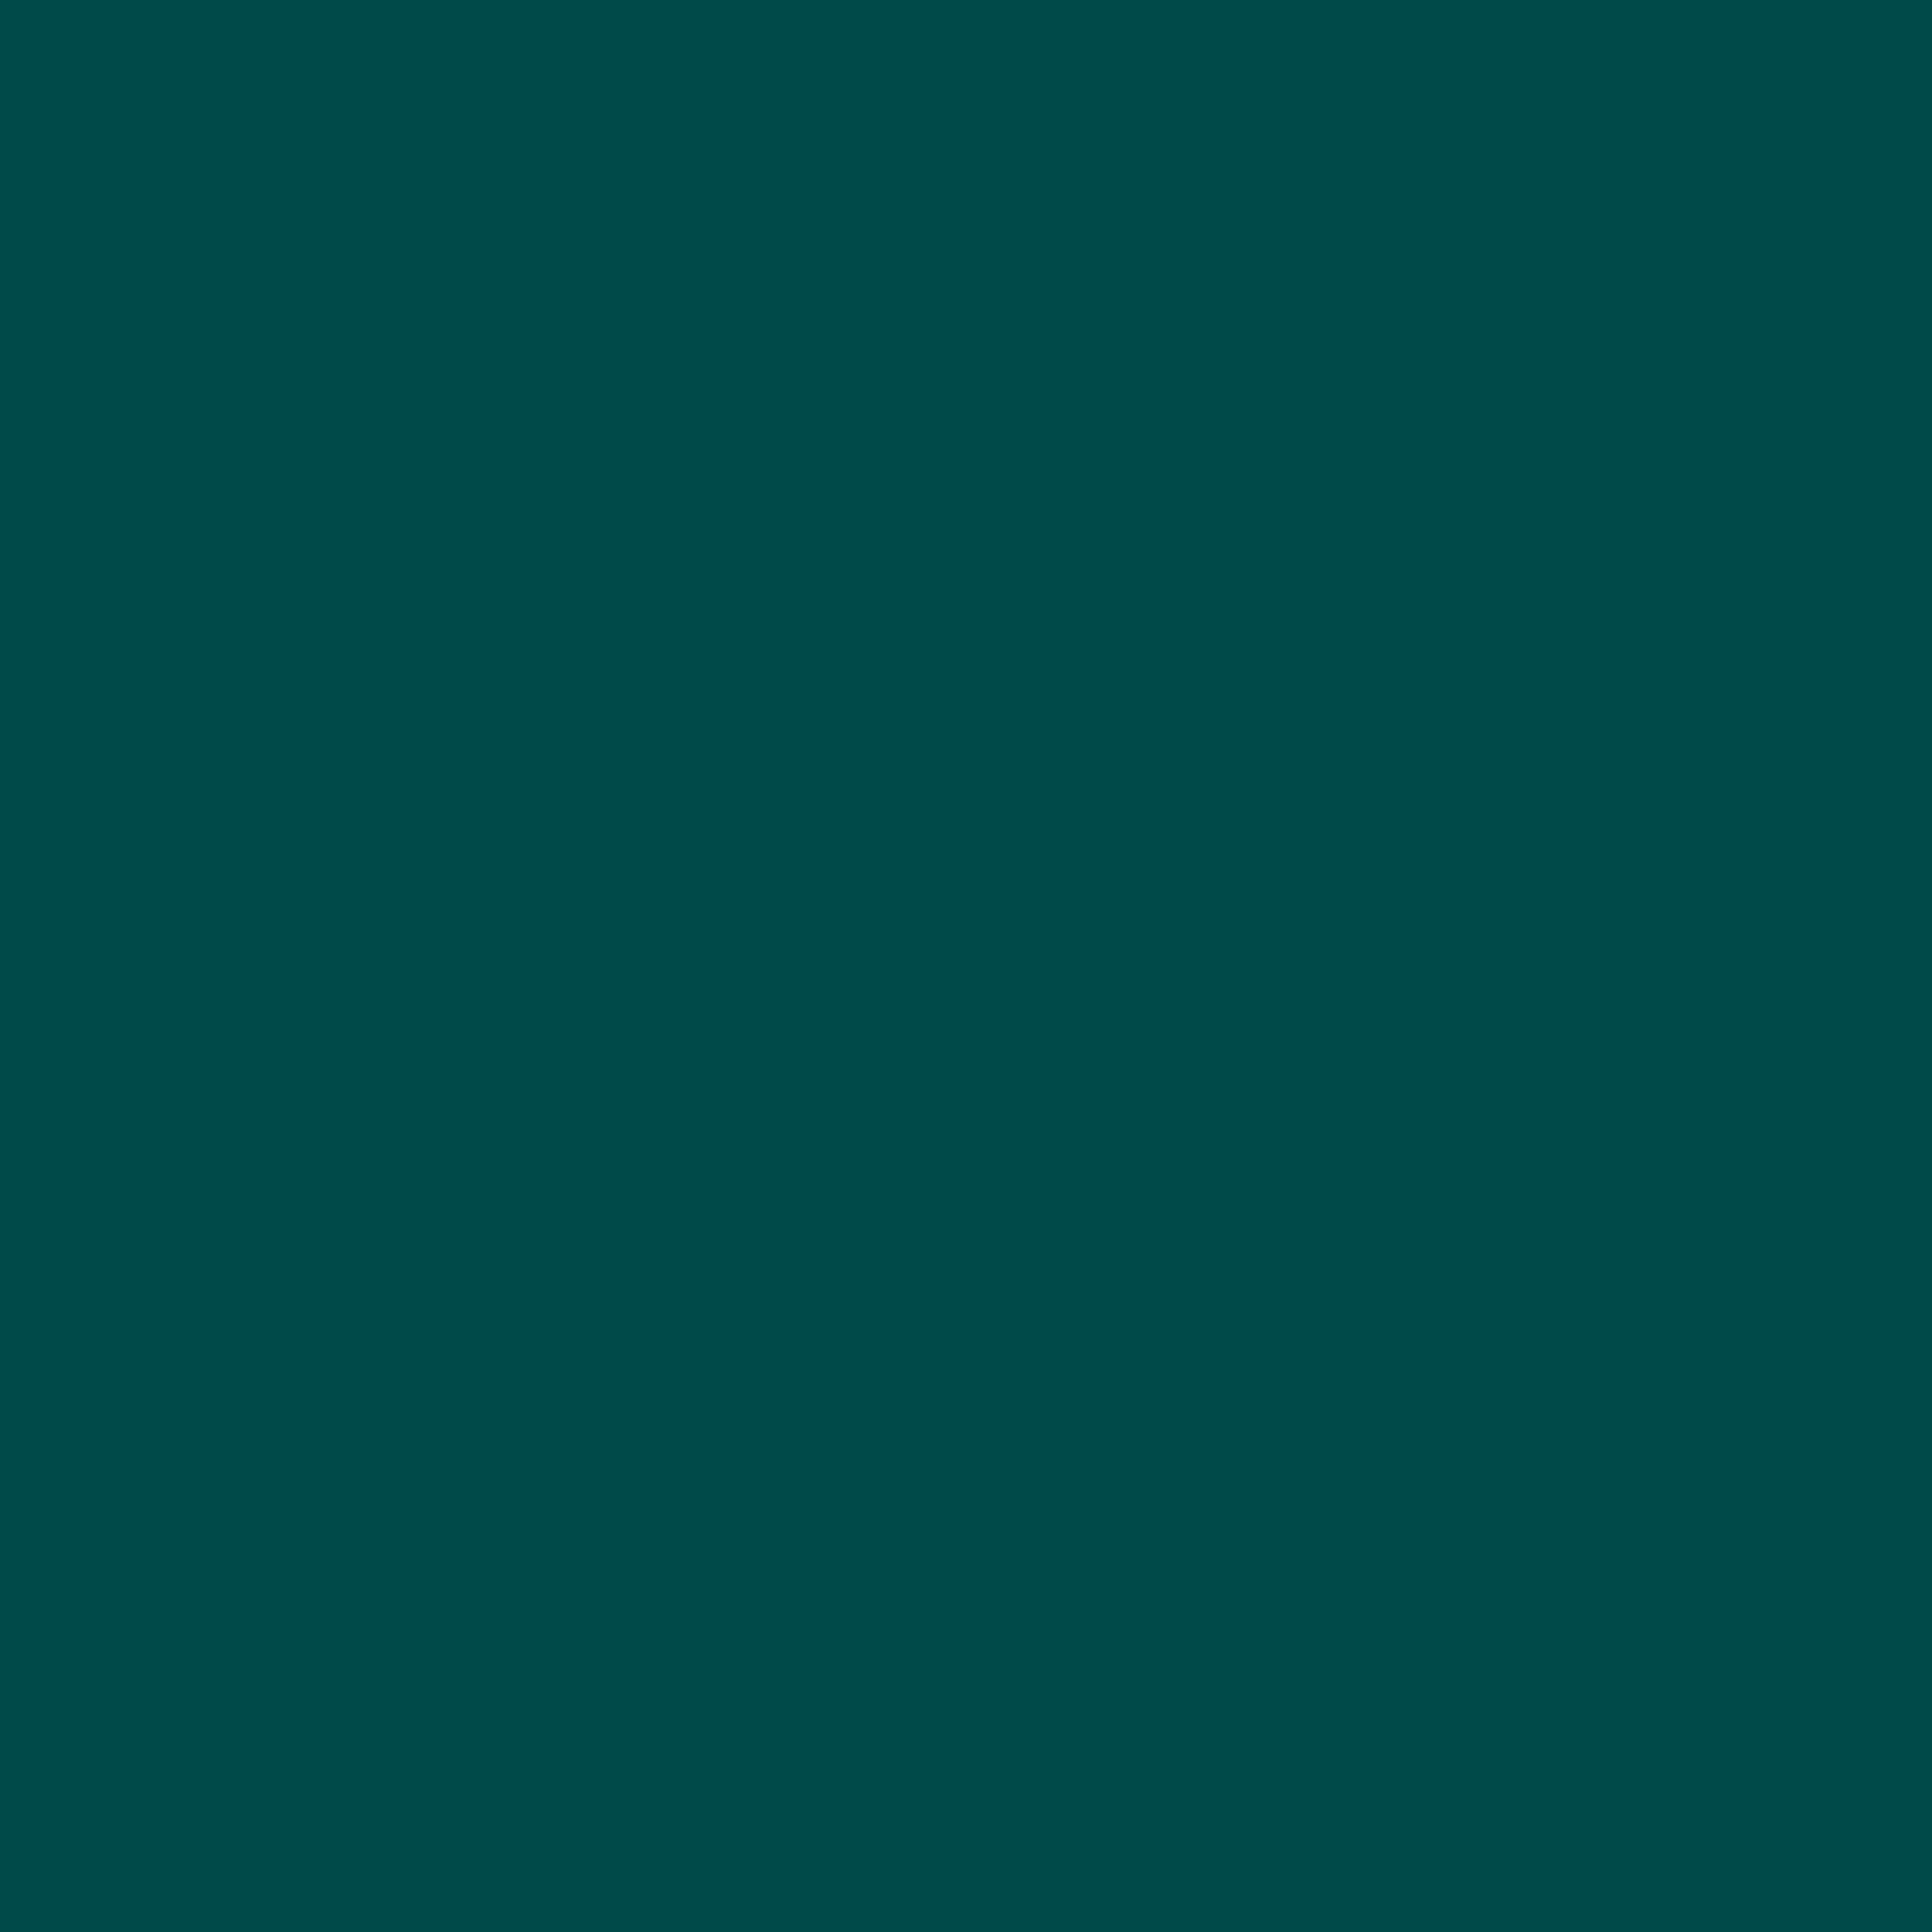 2048x2048 Deep Jungle Green Solid Color Background